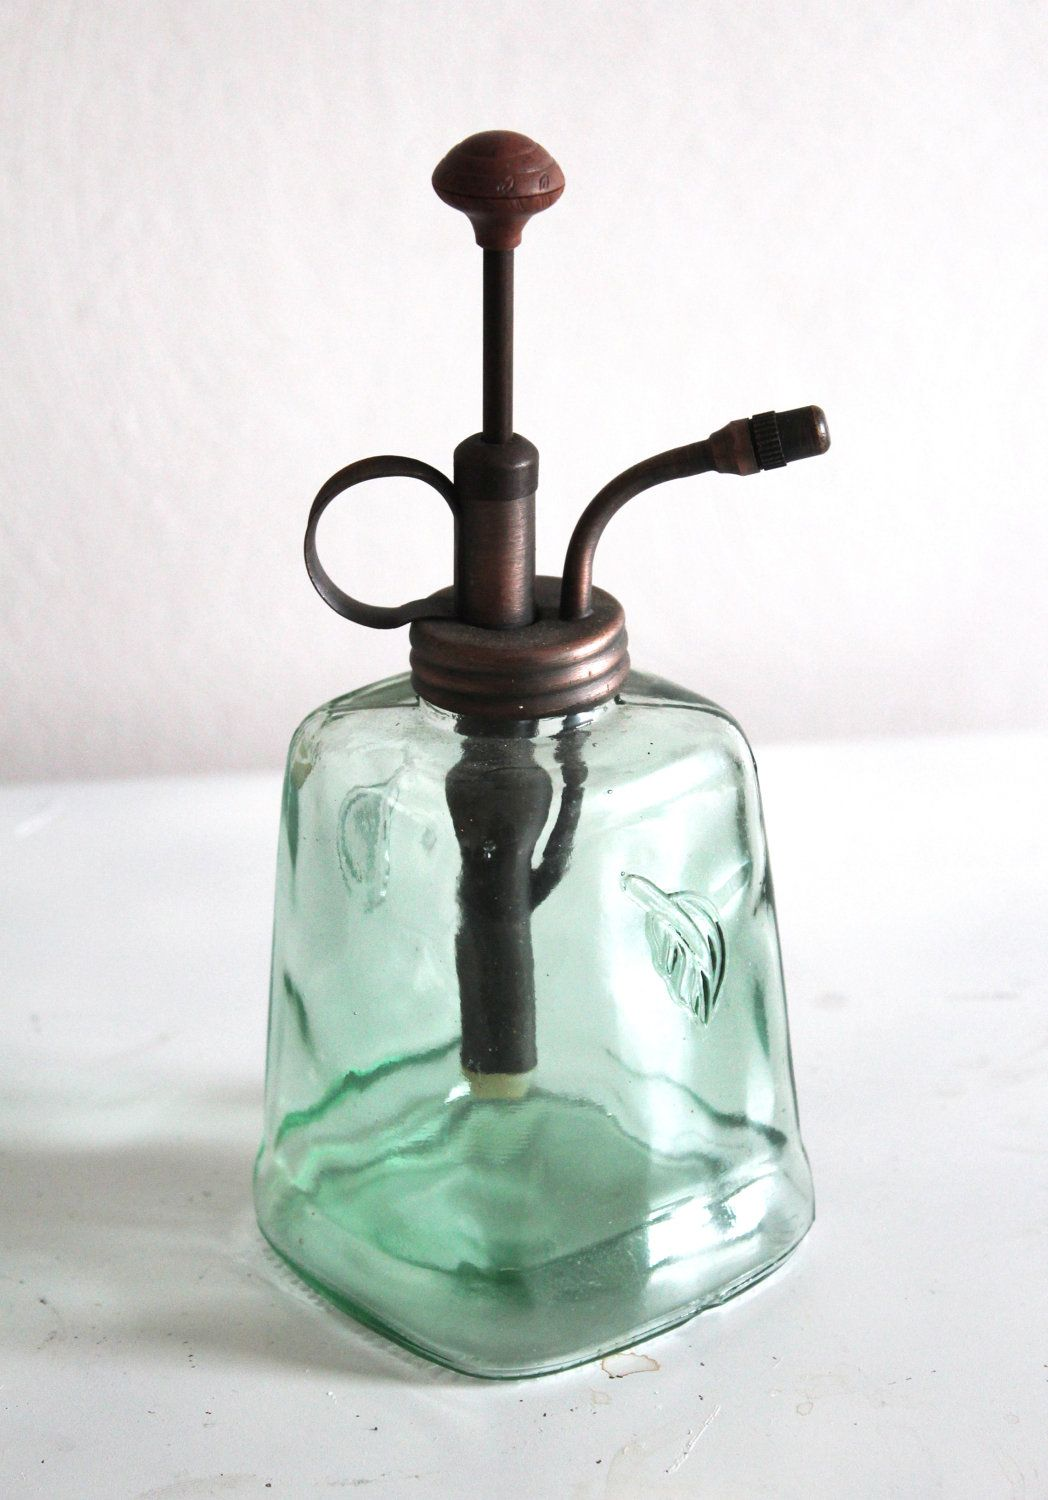 Vintage Bathroom Soap Dispenser Vintage Glass Soap Dispenser Rustic Green Glass Soap